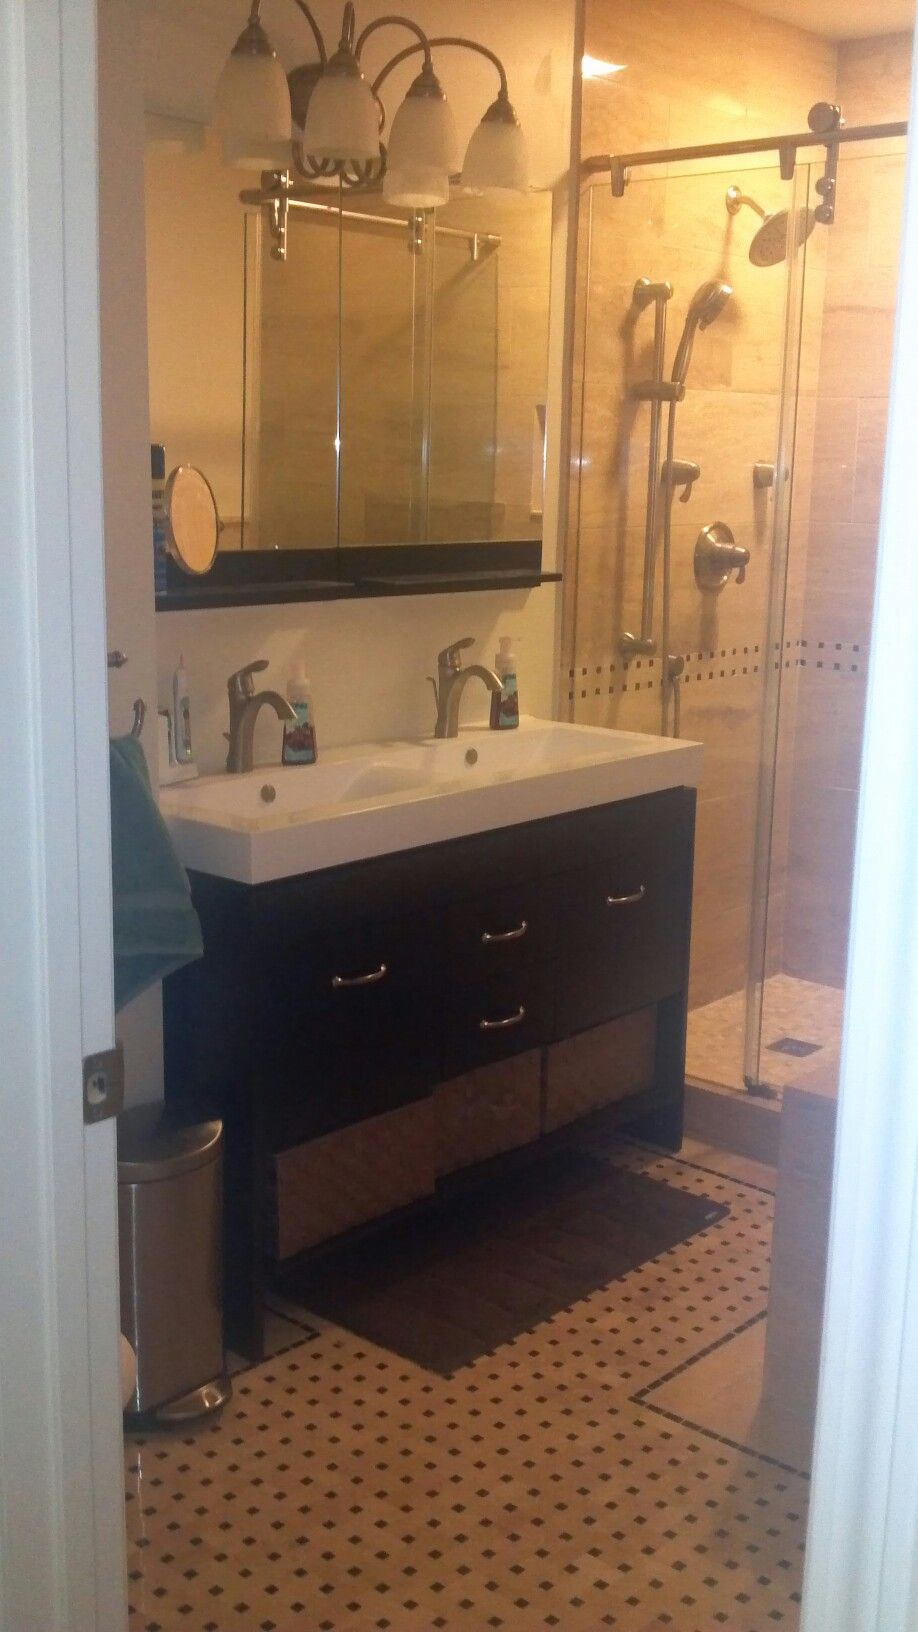 Double Sink Vanity Solution For Small Bathroom Not A Fan Of The